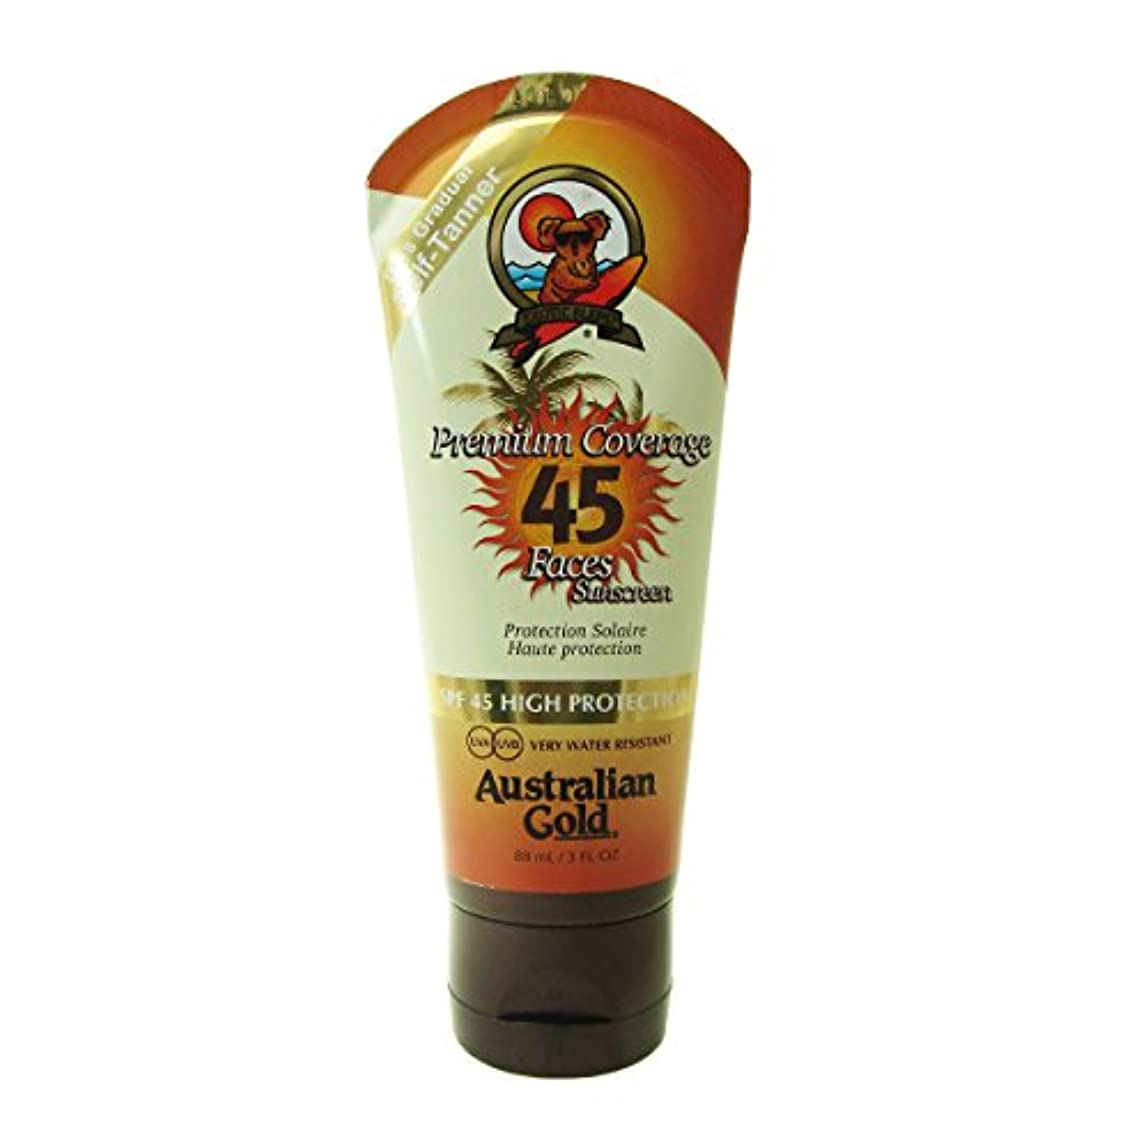 削除する憤る不条理Australian Gold Sunscreen Spf 45 With Self-tanner 88ml [並行輸入品]